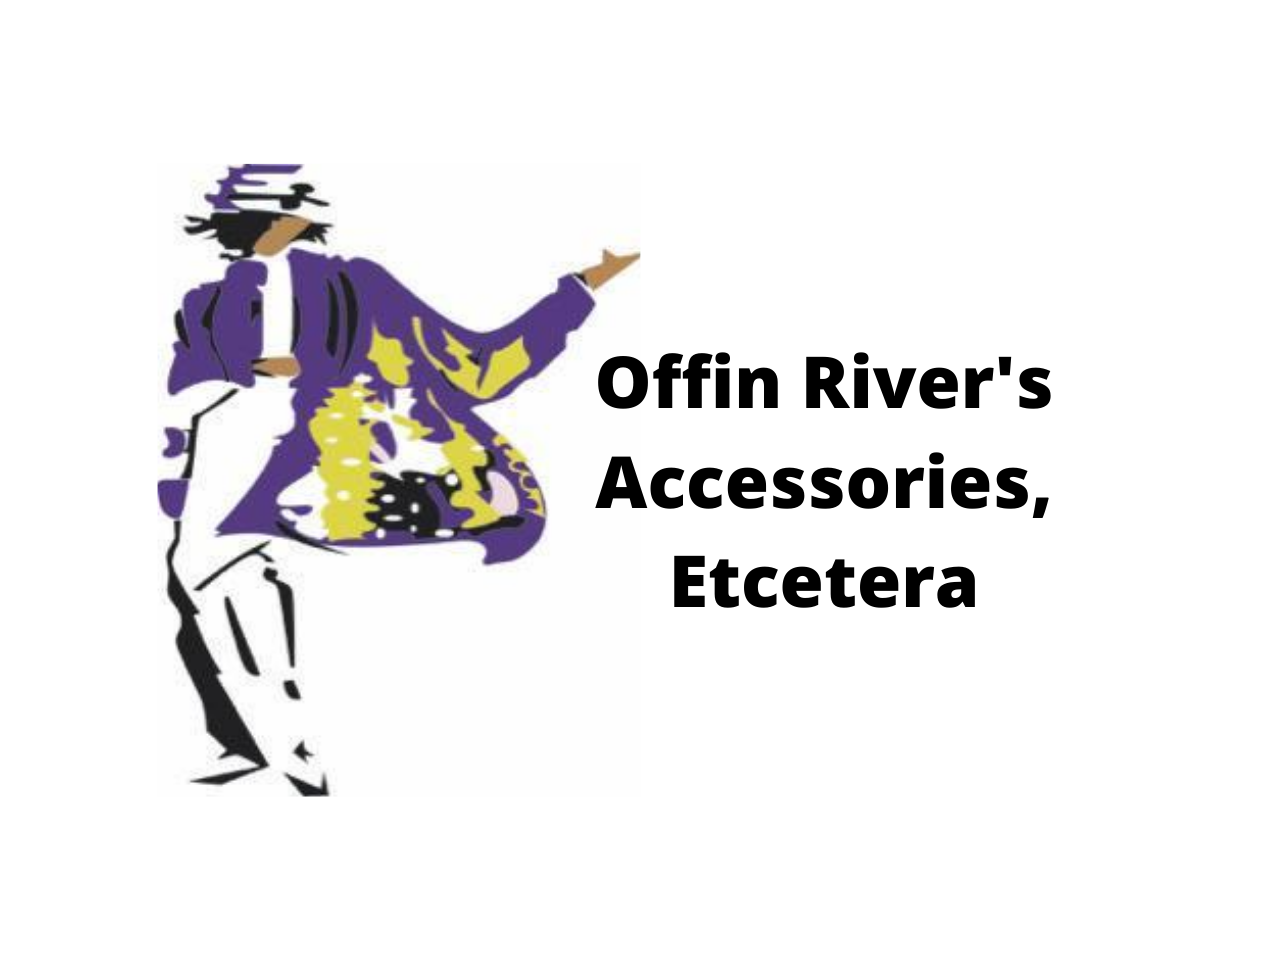 Offin River's Accessories, Etcetera